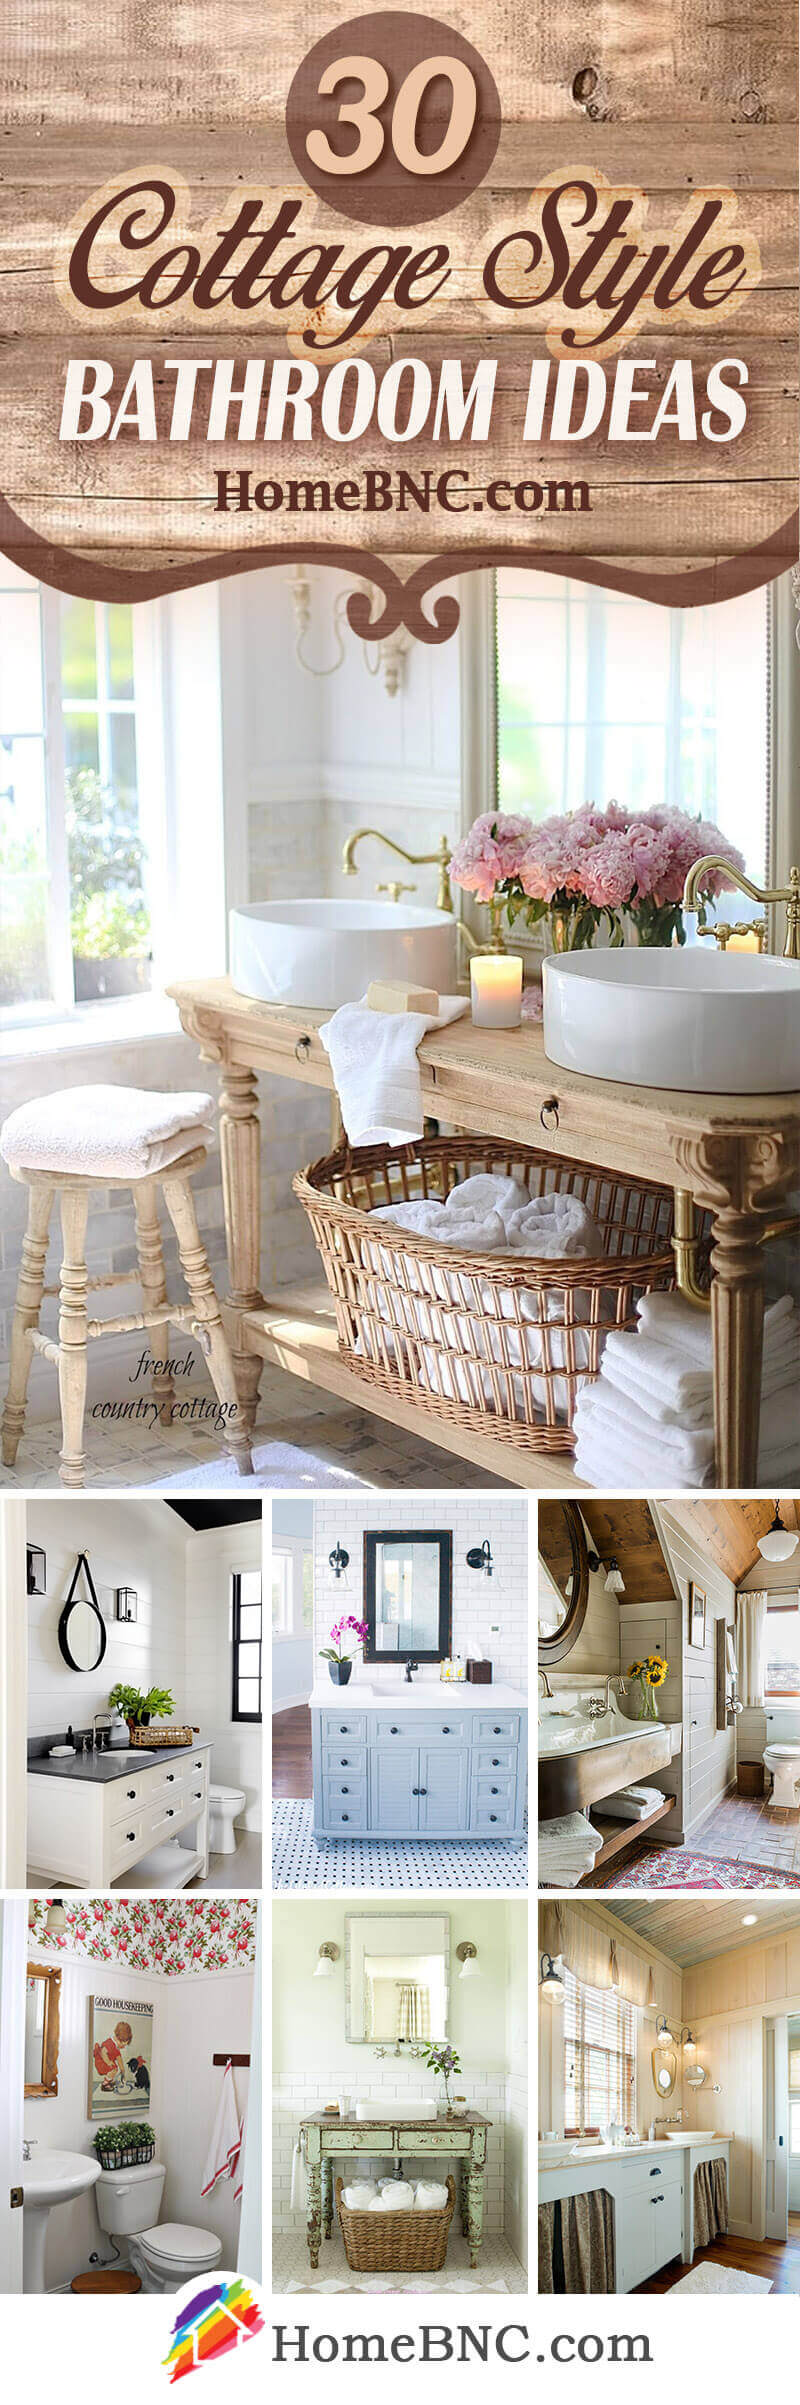 Cottage Style Bathroom Ideas